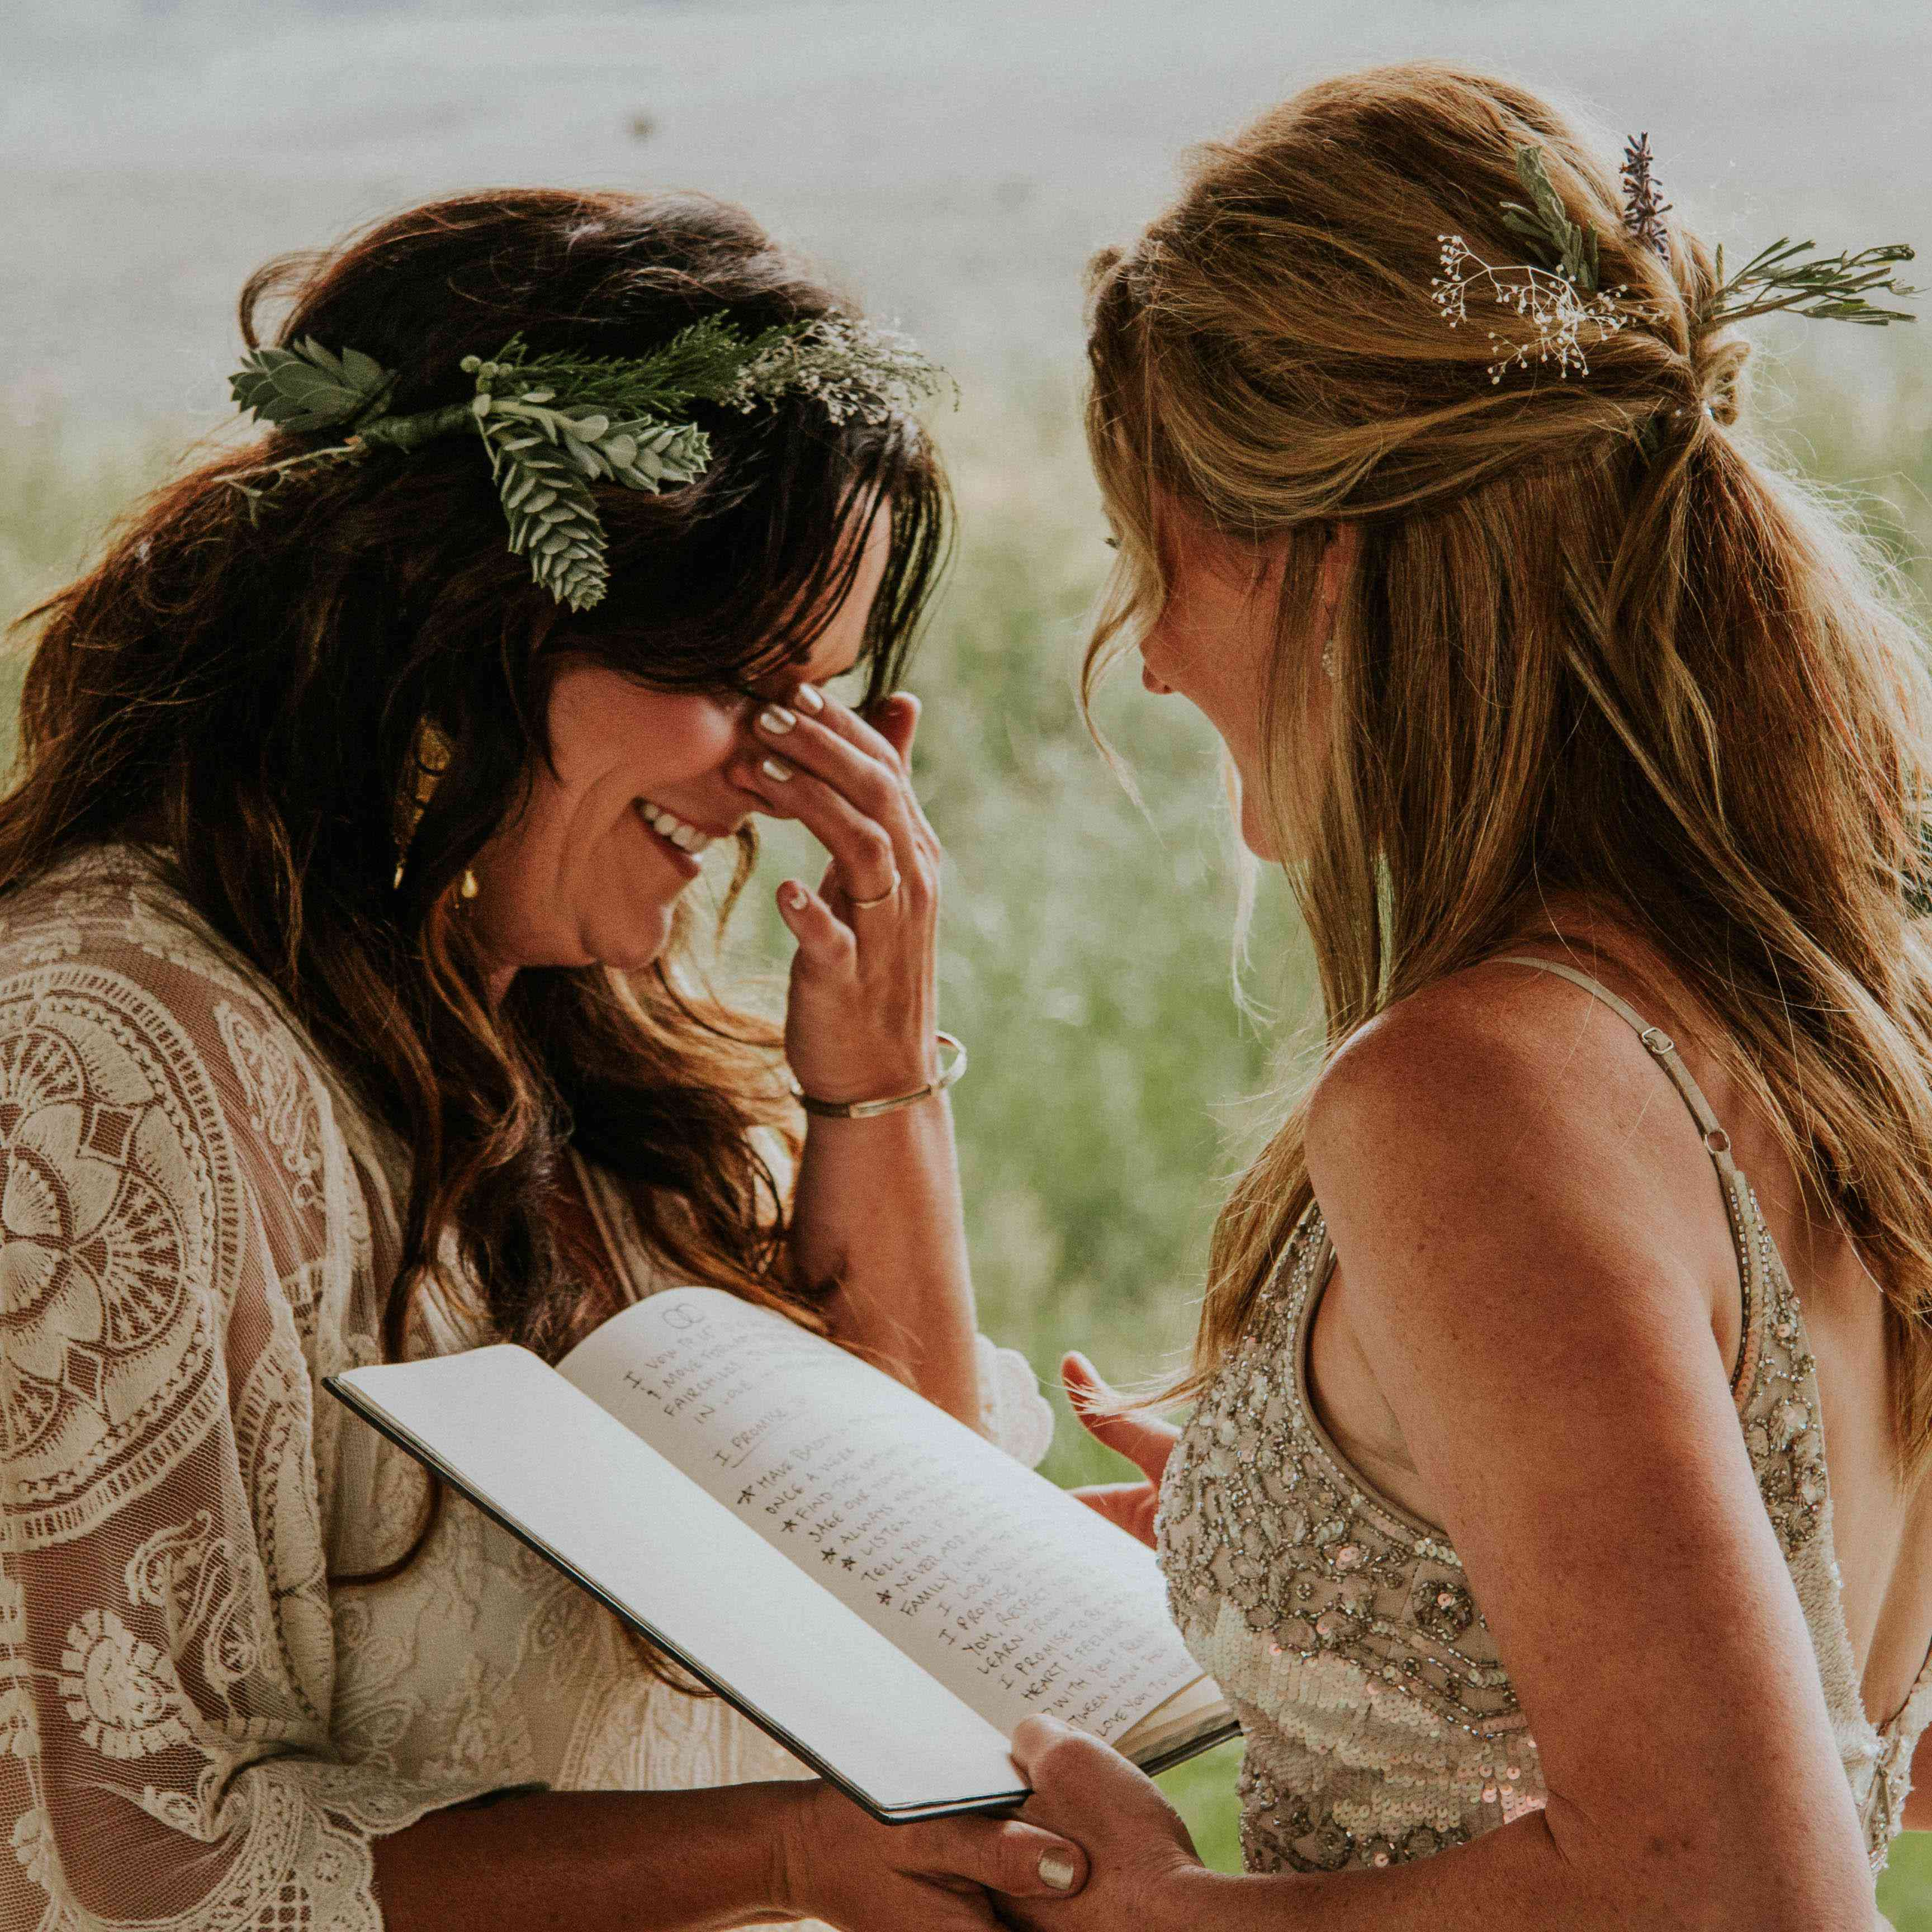 11 Super Sweet Wedding Vow Quotes And Ceremony Readings